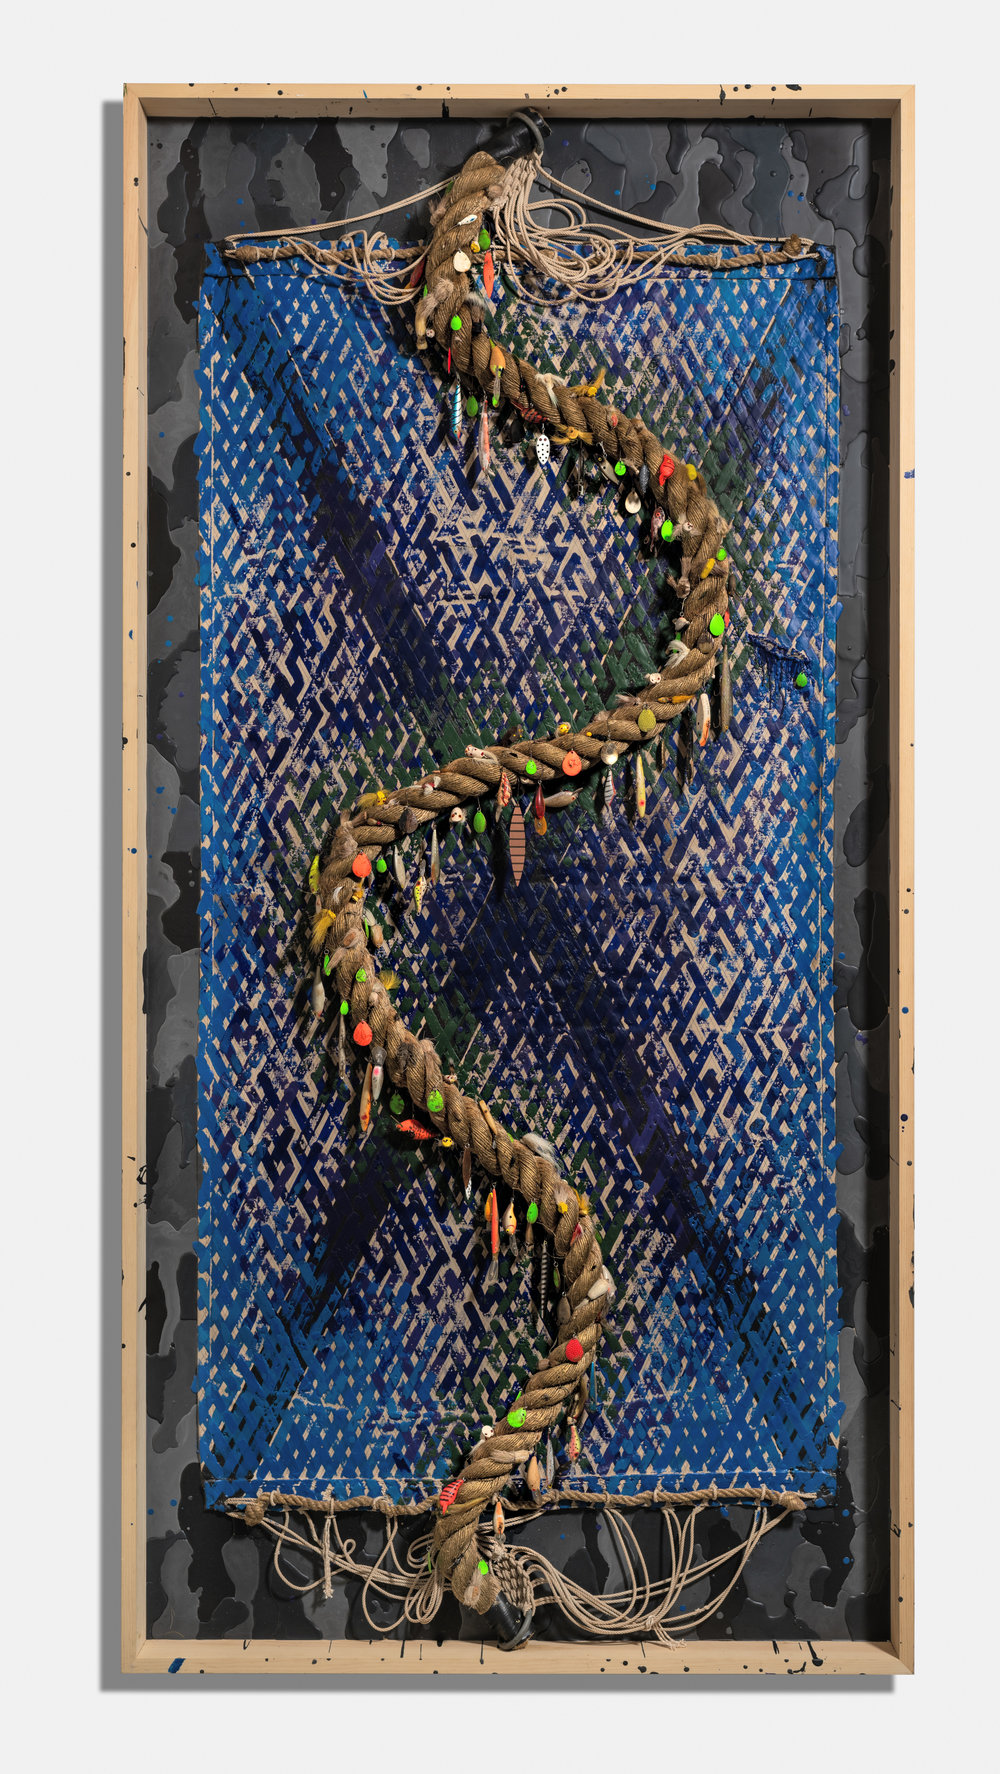 Secret Society , 2016, encaustic, hammock, rope, fishing lures and flies on panel, 96 x 48 x 3 1/2 inches